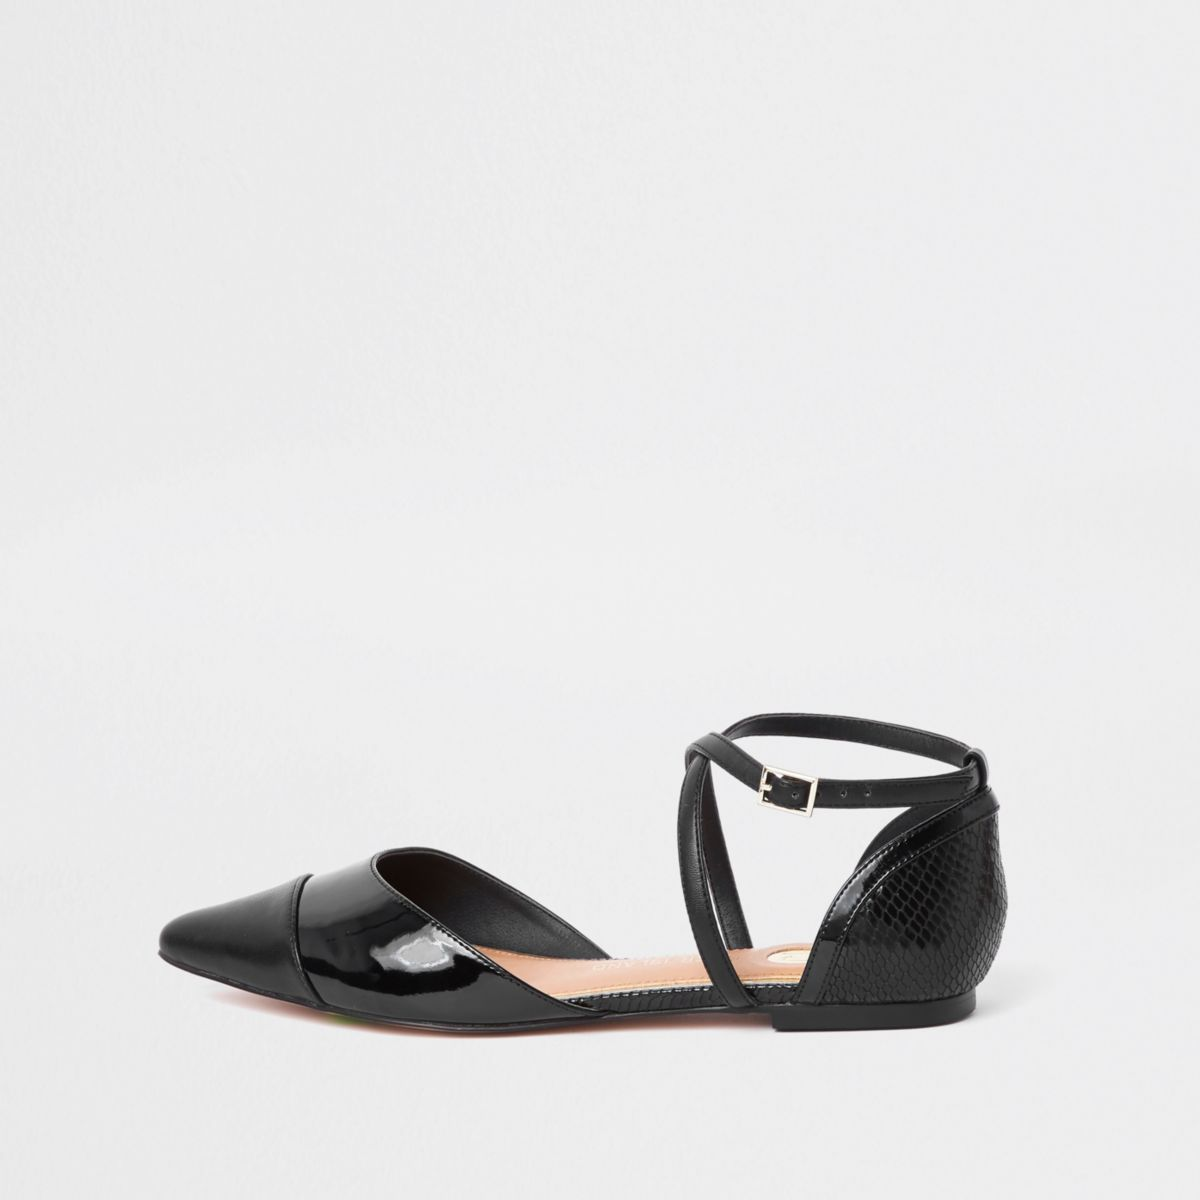 Black Pointed Strappy Shoes by River Island